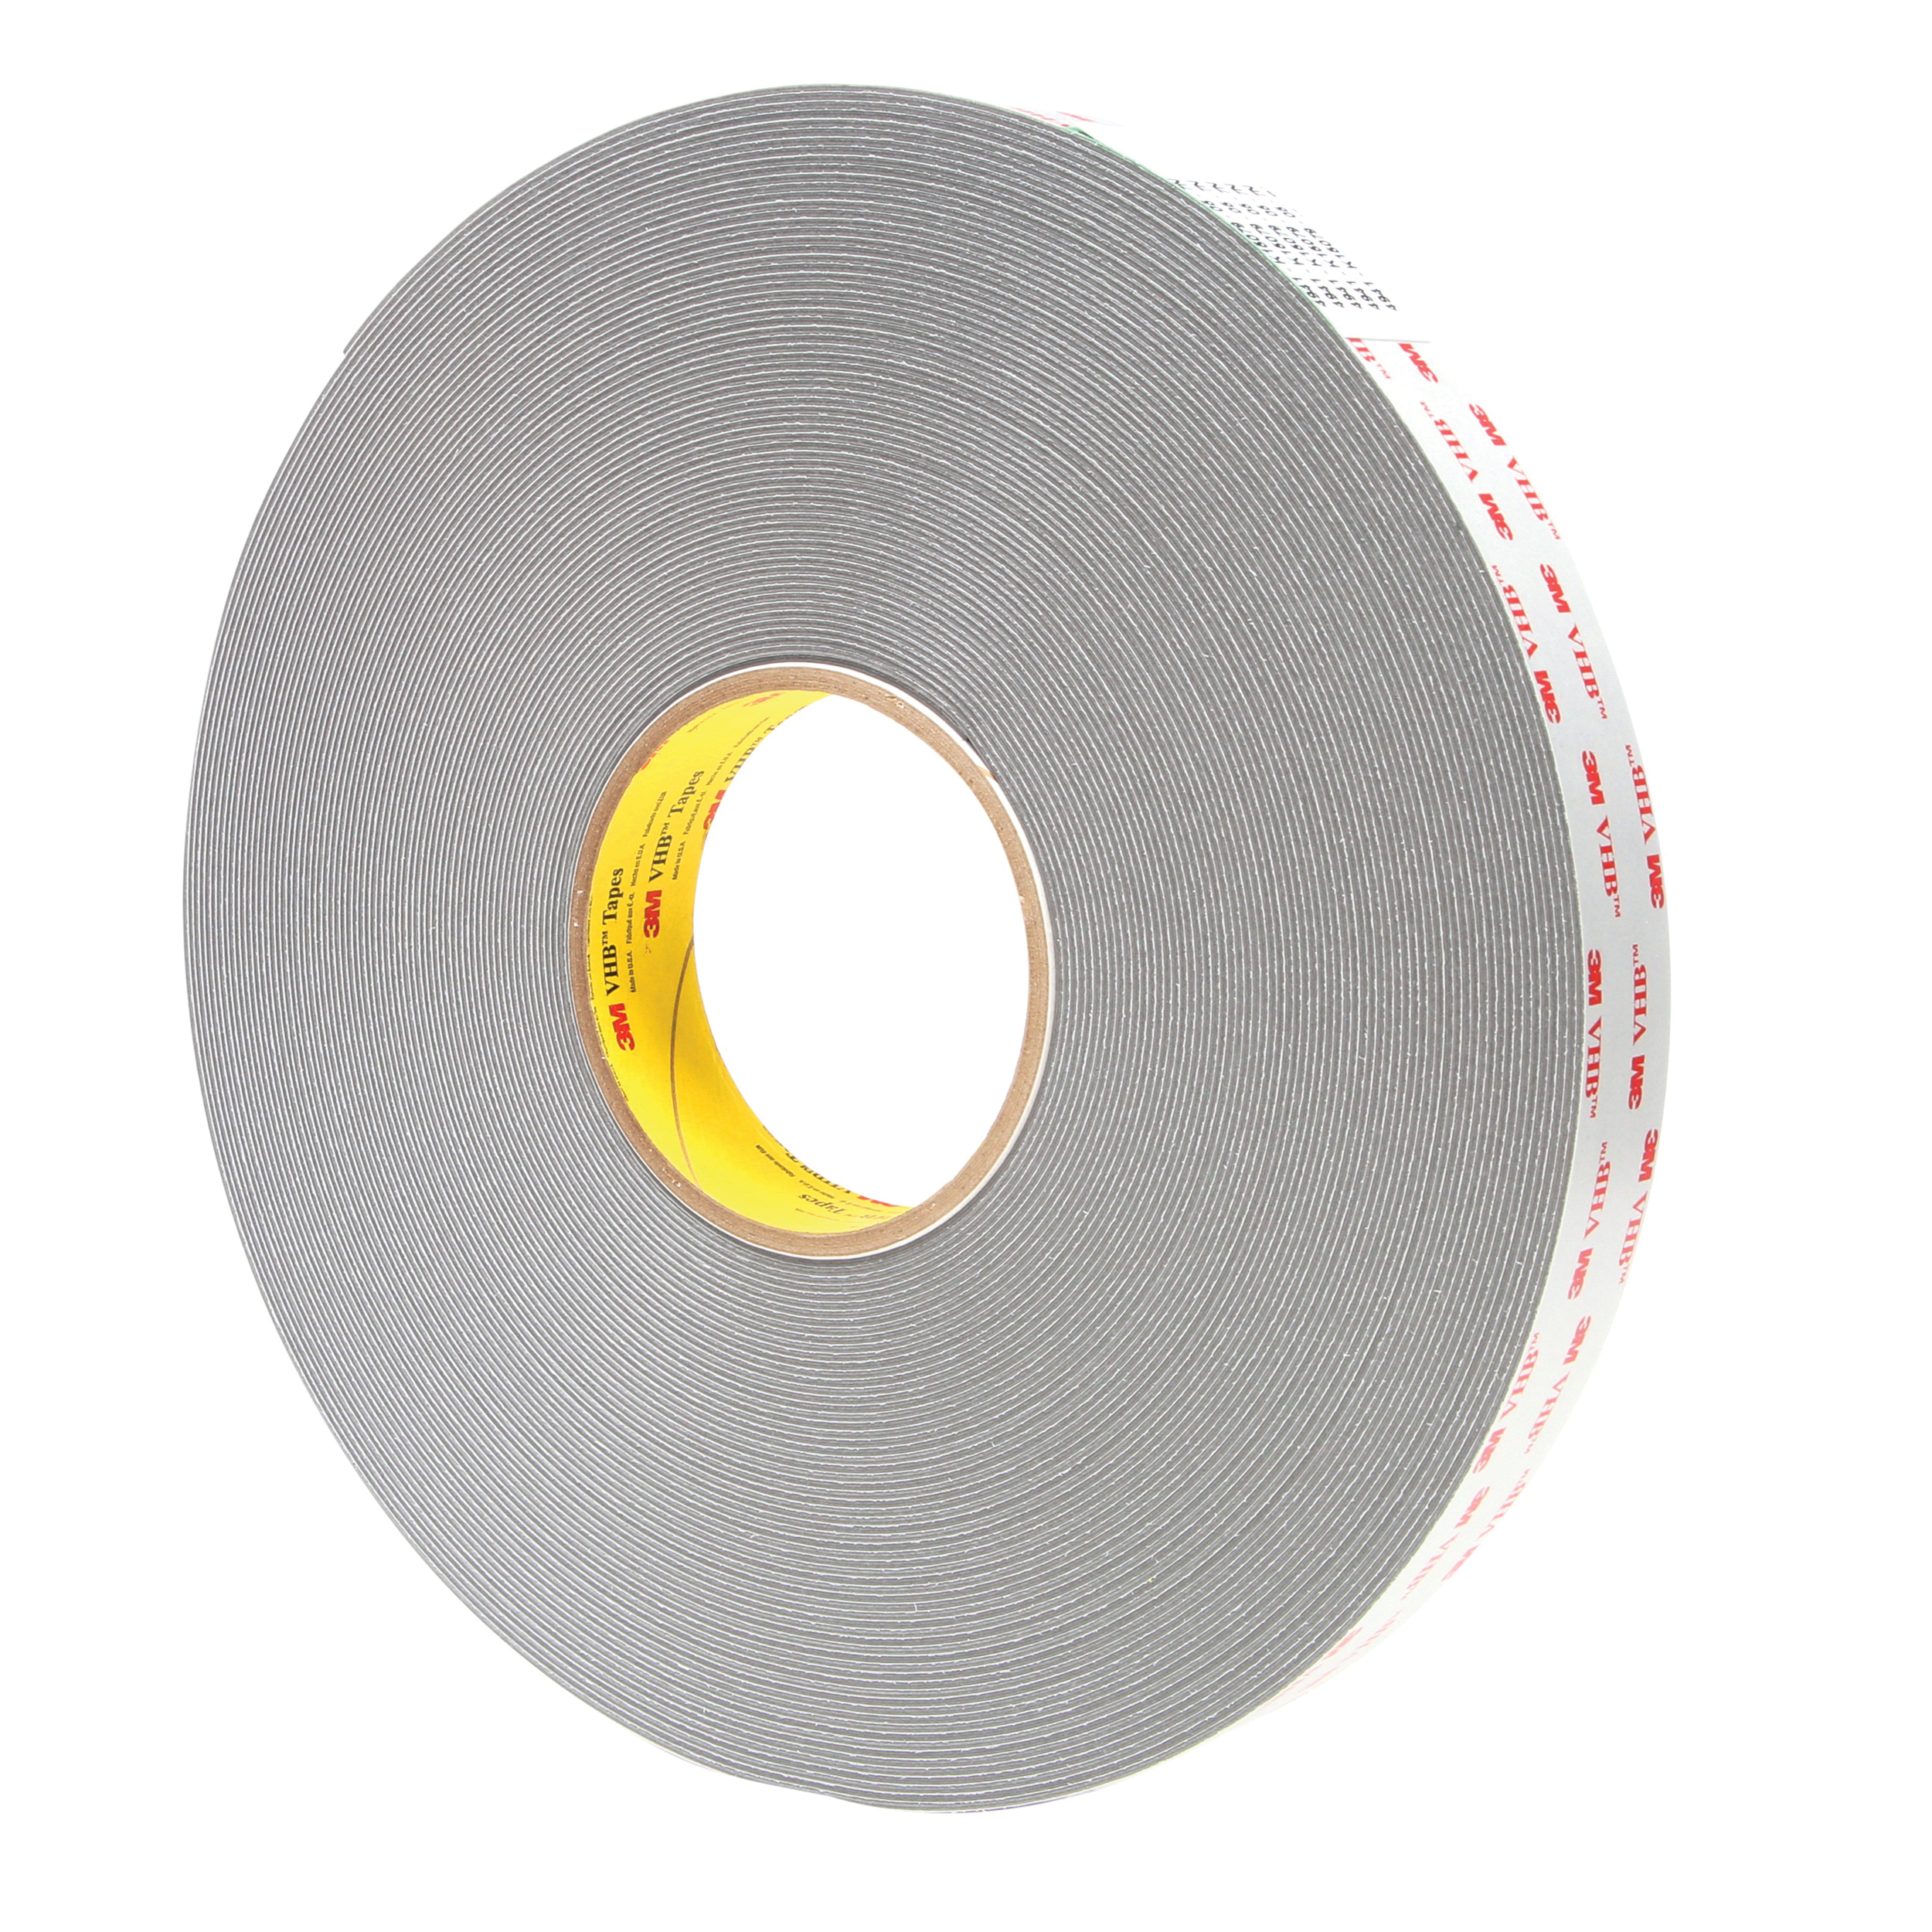 3M™ VHB™ 021200-64888 Pressure Sensitive Double Sided Bonding Tape, 36 yd L x 1 in W, 0.045 in THK, Multi-Purpose Acrylic Adhesive, Acrylic Foam Backing, Gray